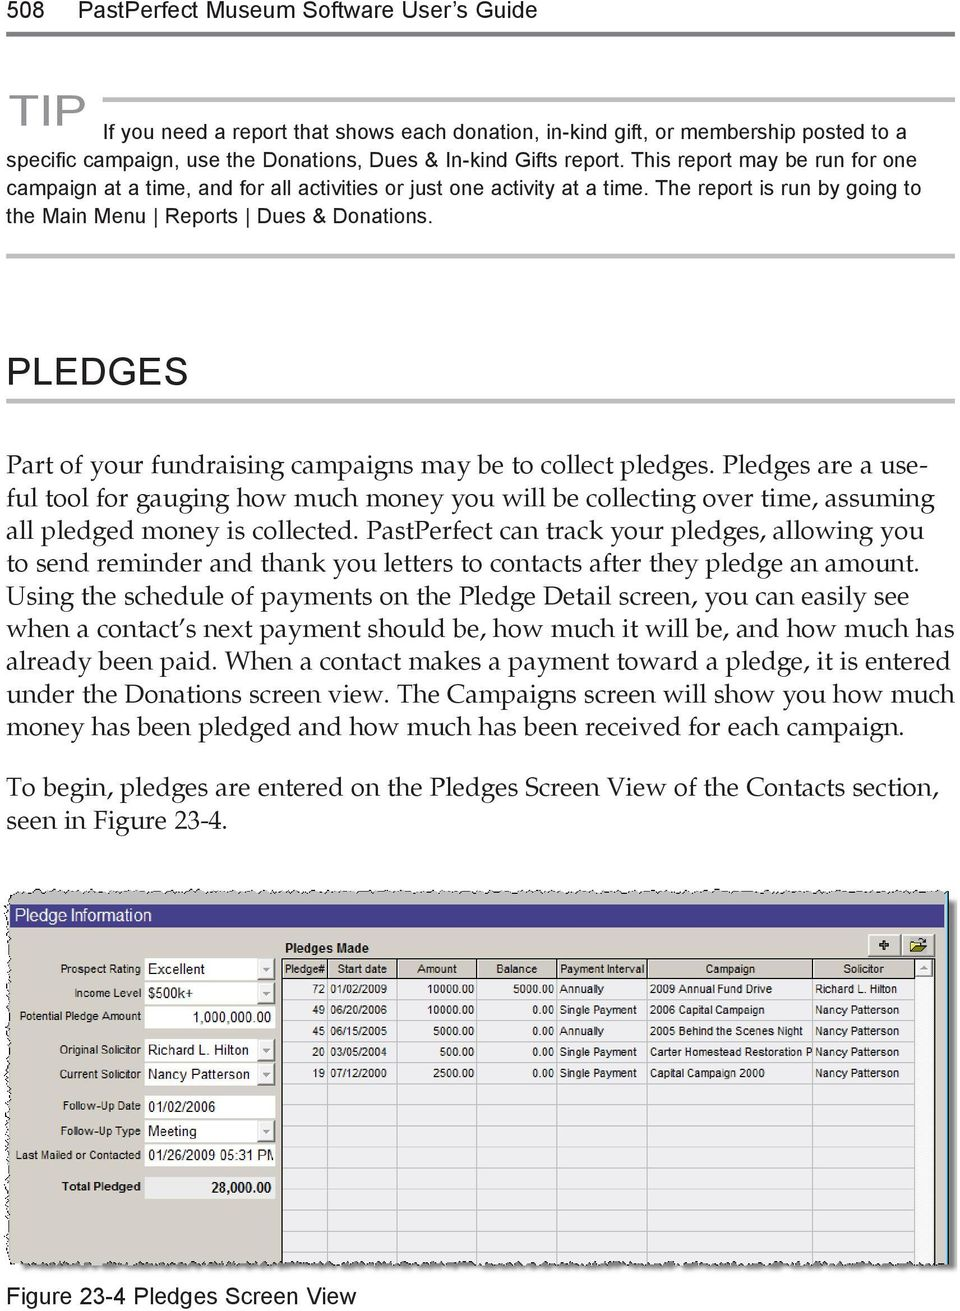 PLEDGES Part of your fundraising campaigns may be to collect pledges. Pledges are a useful tool for gauging how much money you will be collecting over time, assuming all pledged money is collected.